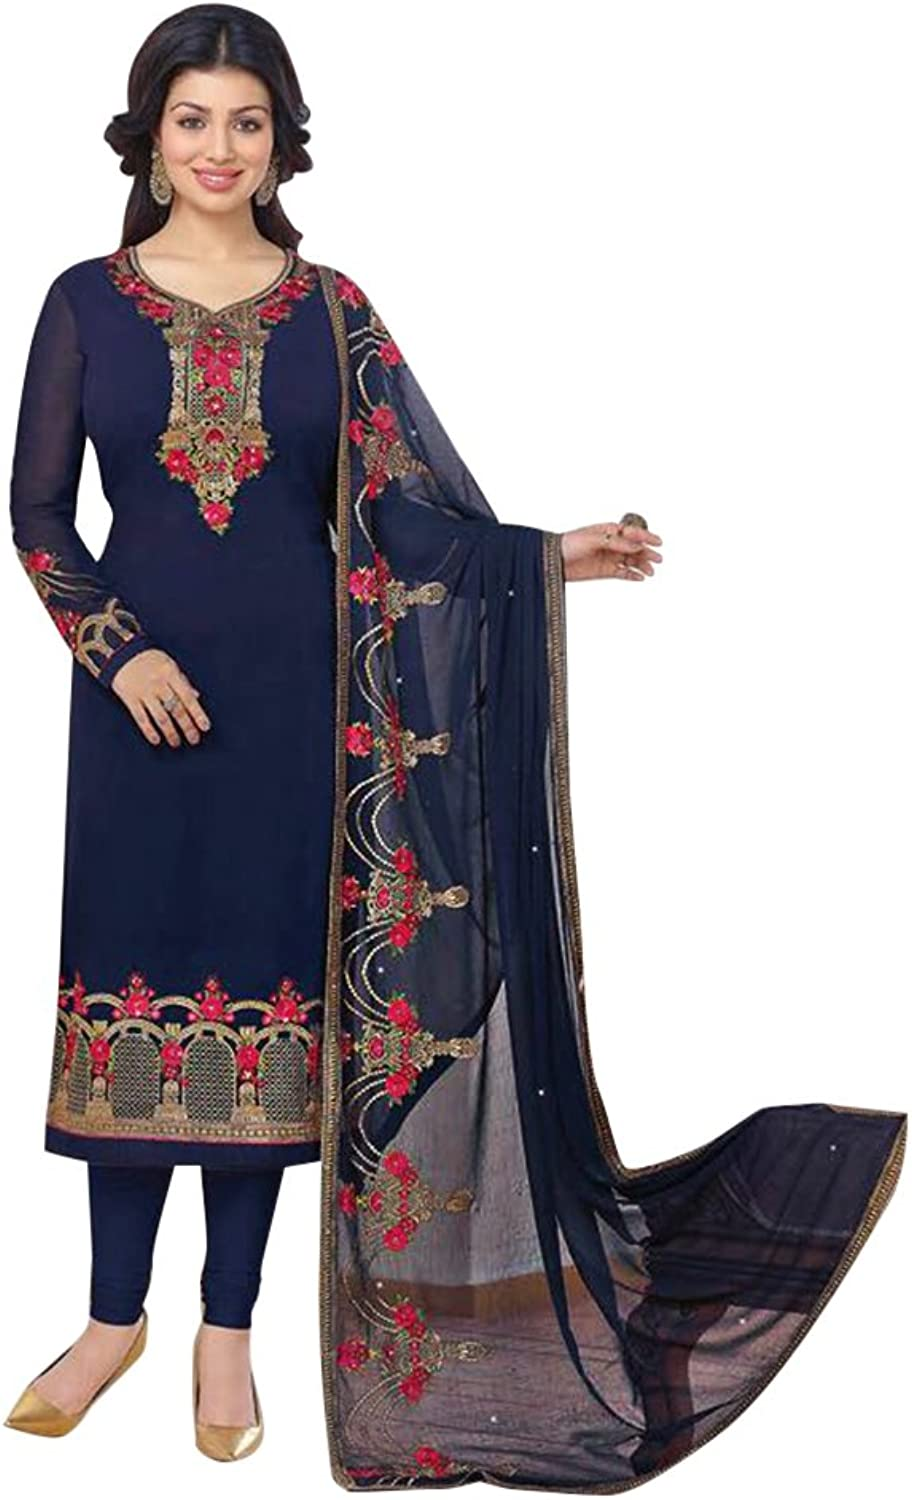 Bollywood Straight Dresses for women Salwar Kameez Ceremony Wedding 907